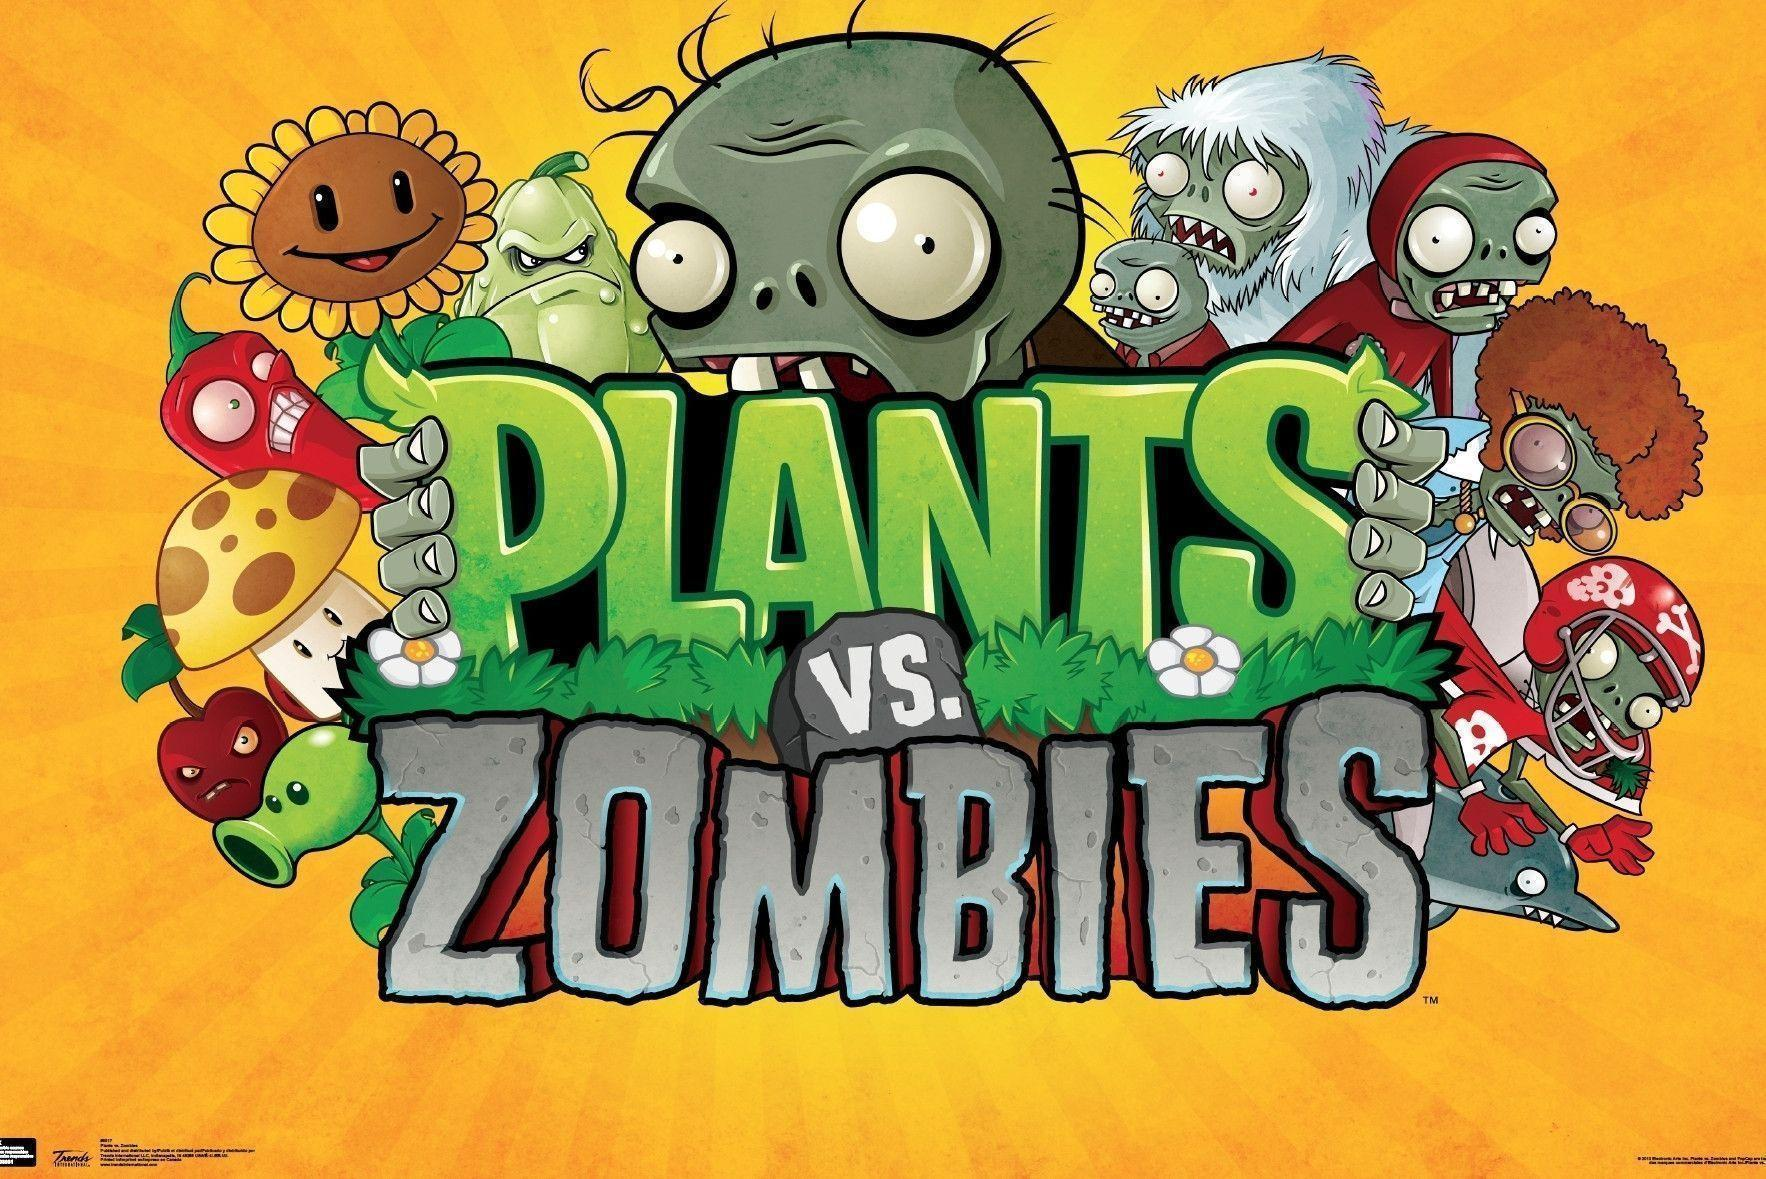 Plants vs zombies wallpapers wallpaper cave for Plante vs zombie